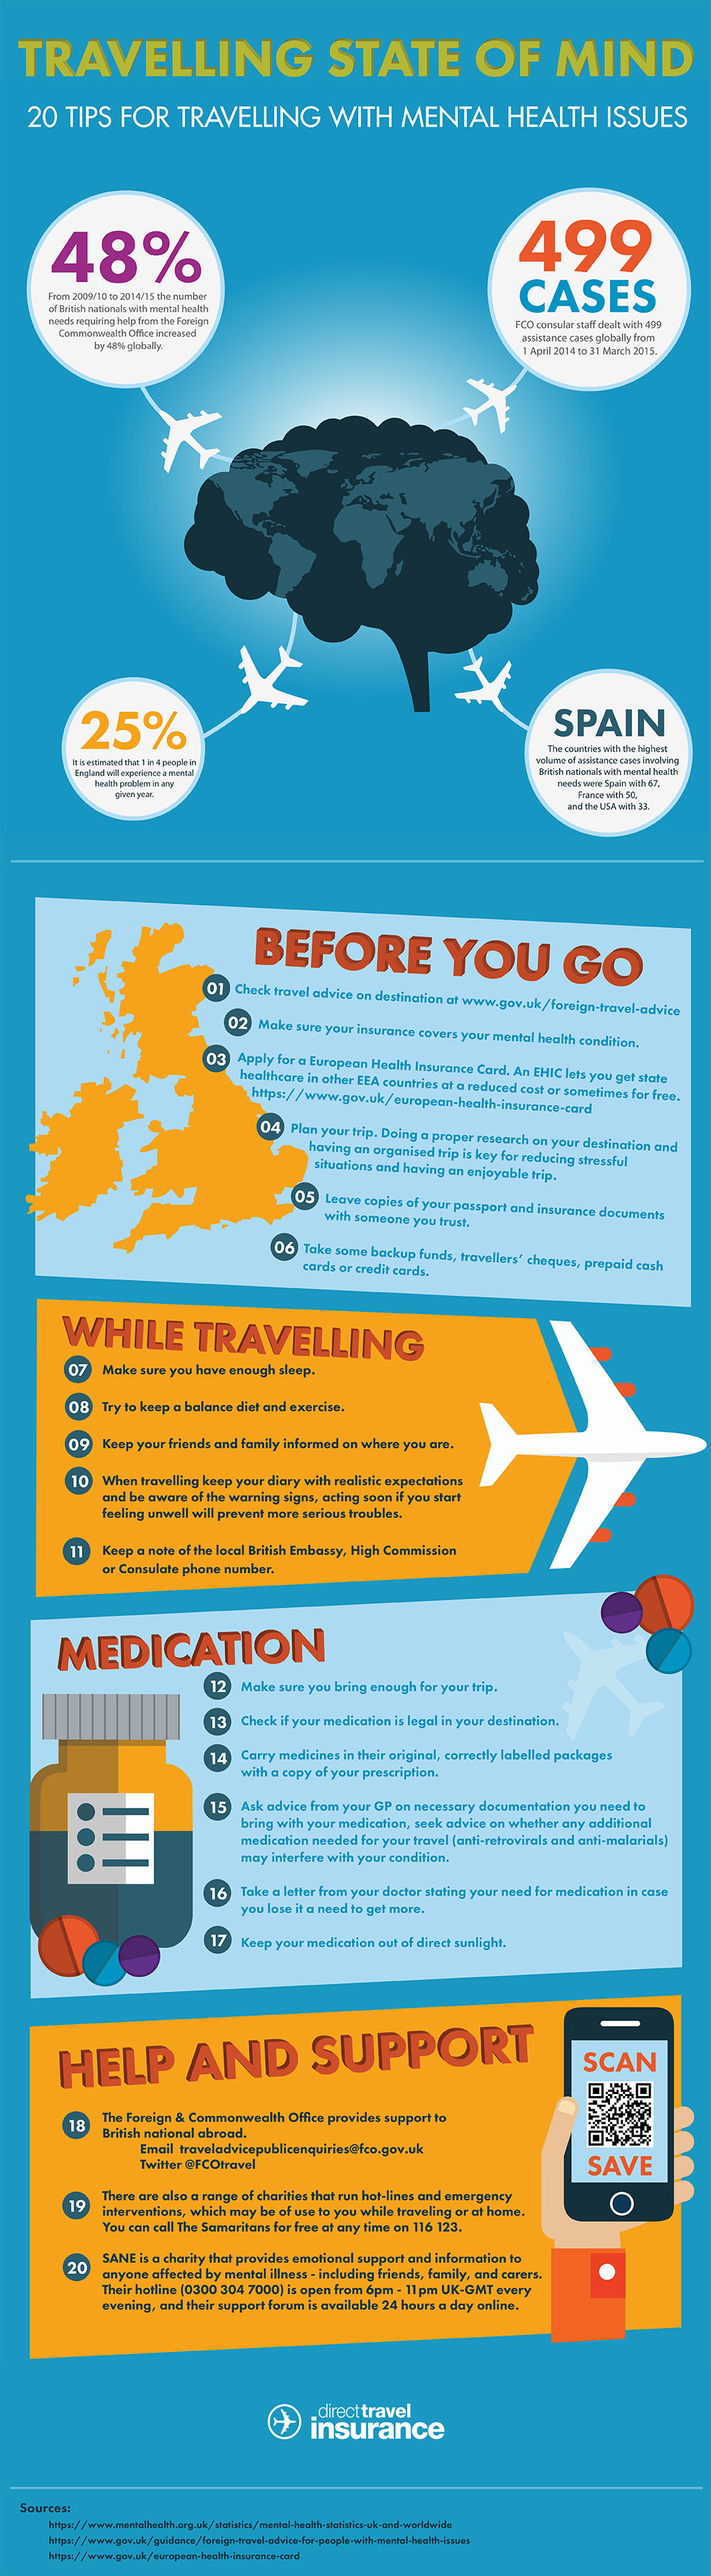 Direct Travel travelling state of mind infographic